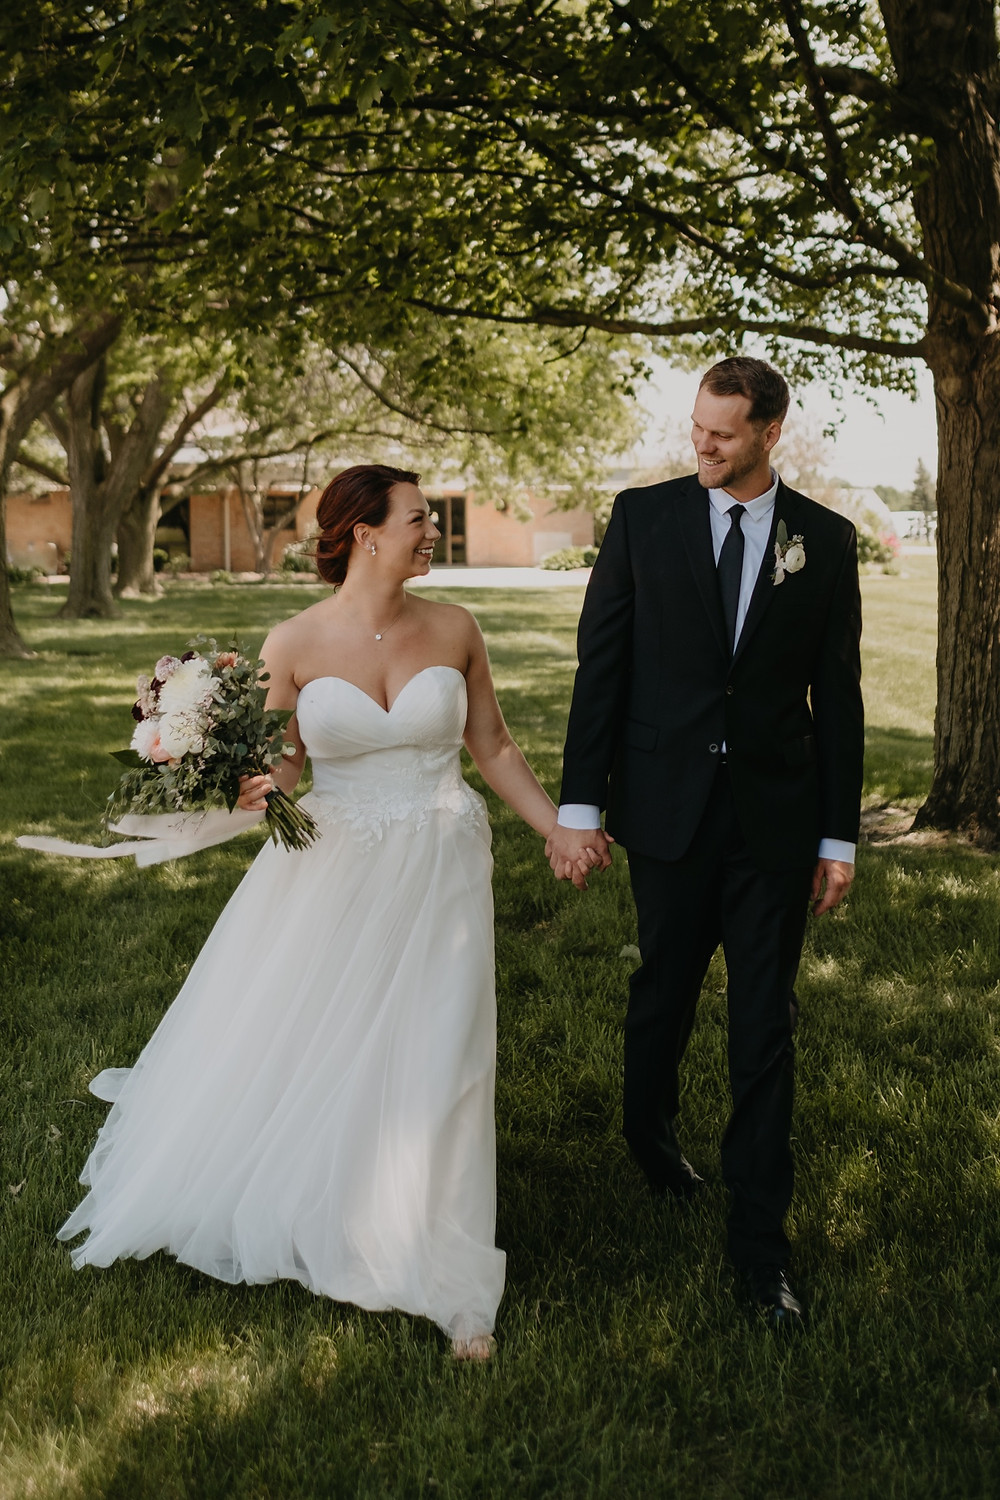 Bride and groom wedding portraits in Metro Detroit. Photographed by Nicole Leanne Photography.